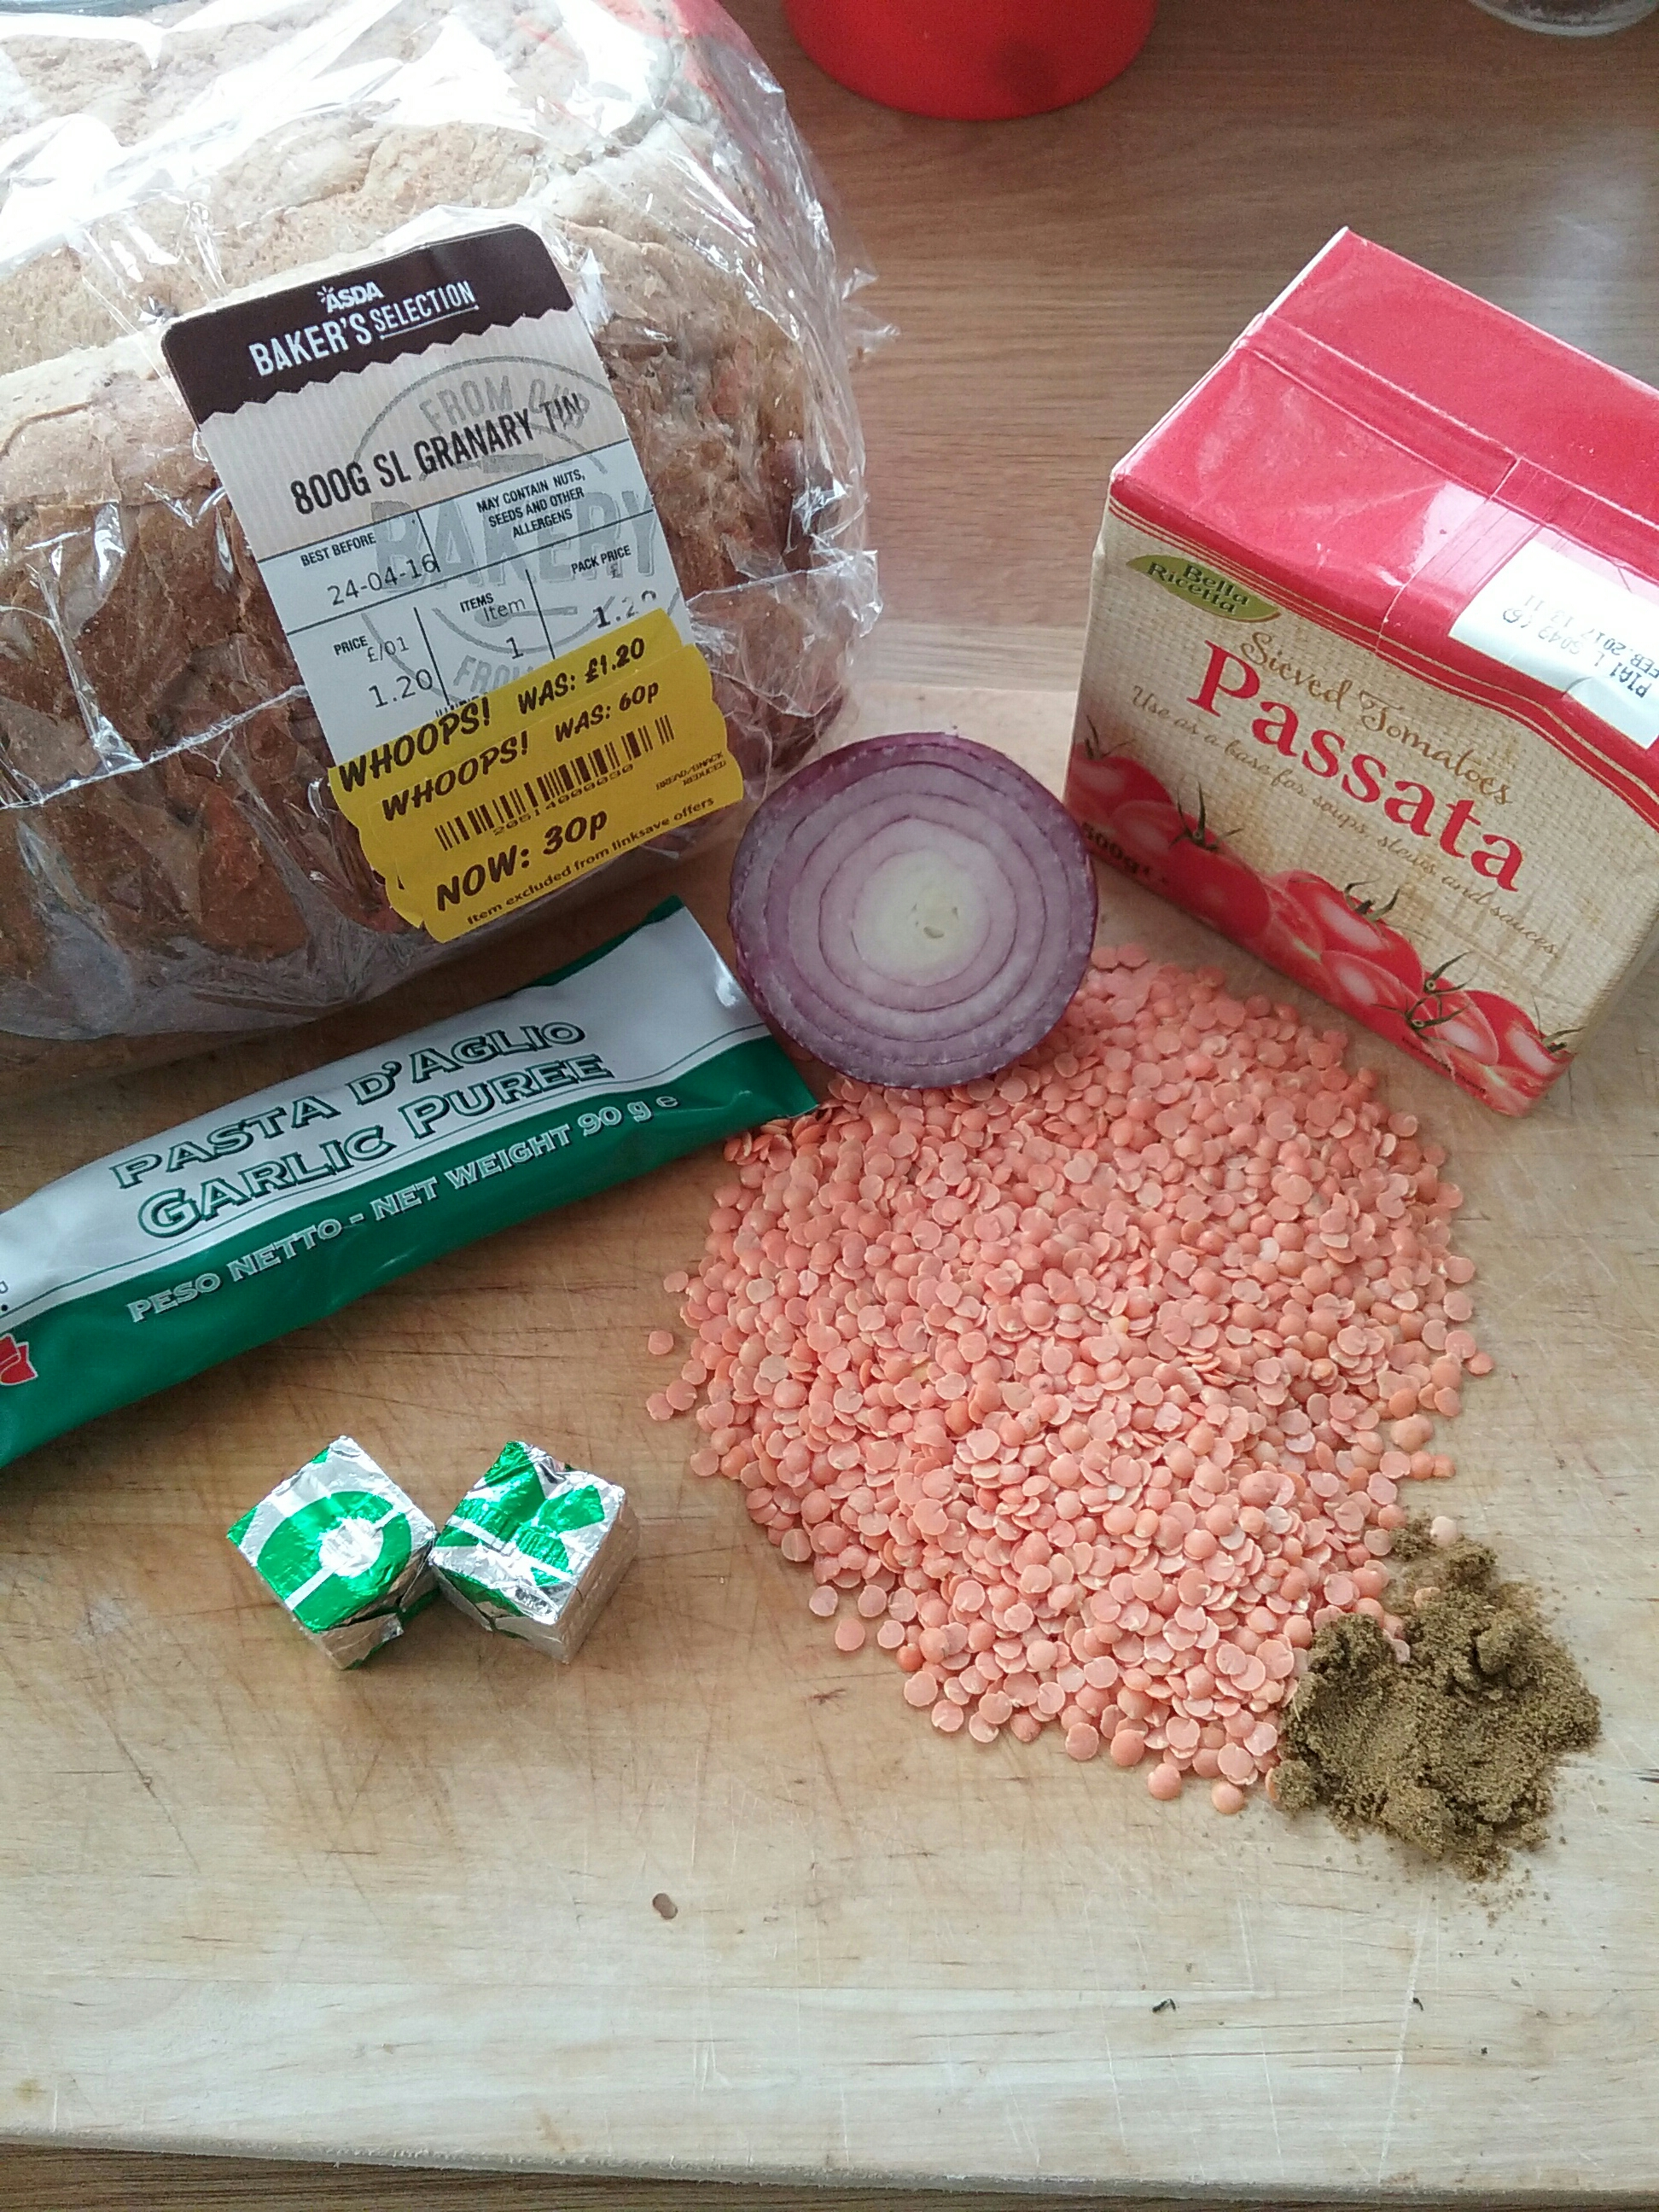 picture of pasta sauce, Asda granary bread with yellow tag on for 30p. tube of garlic puree, herbs, red onion and green stock cubes on a chopping board